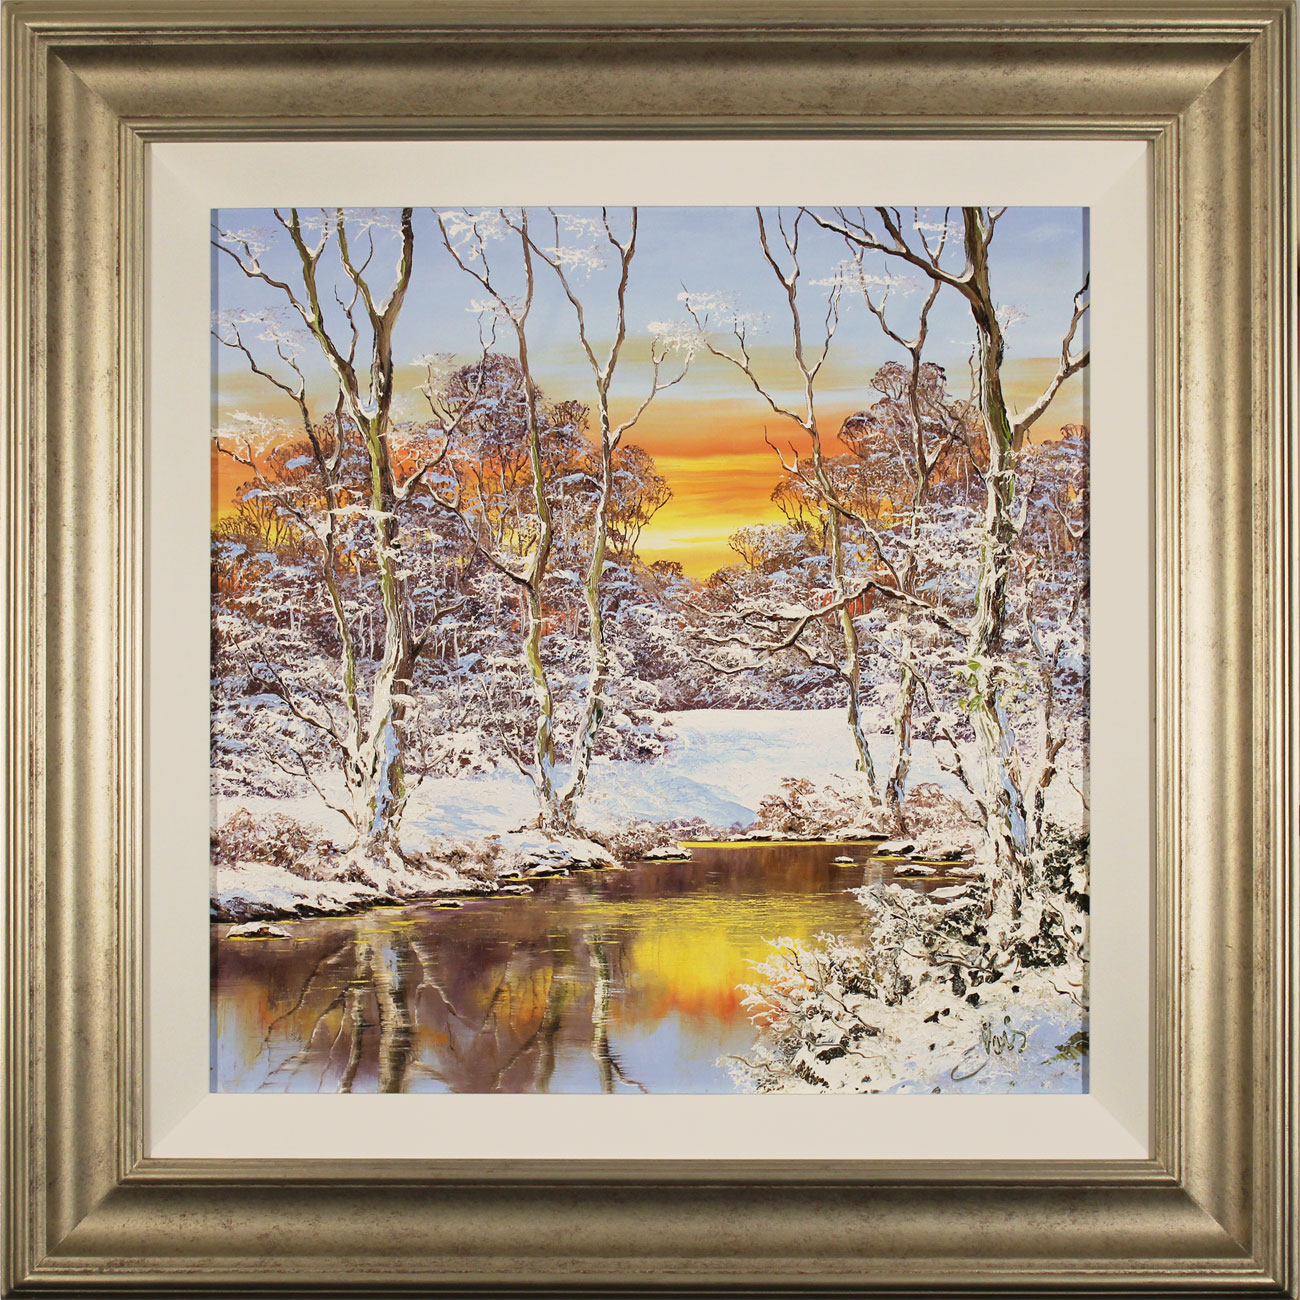 Terry Evans, Original oil painting on canvas, Winter Walk, Yorkshire Dales Click to enlarge